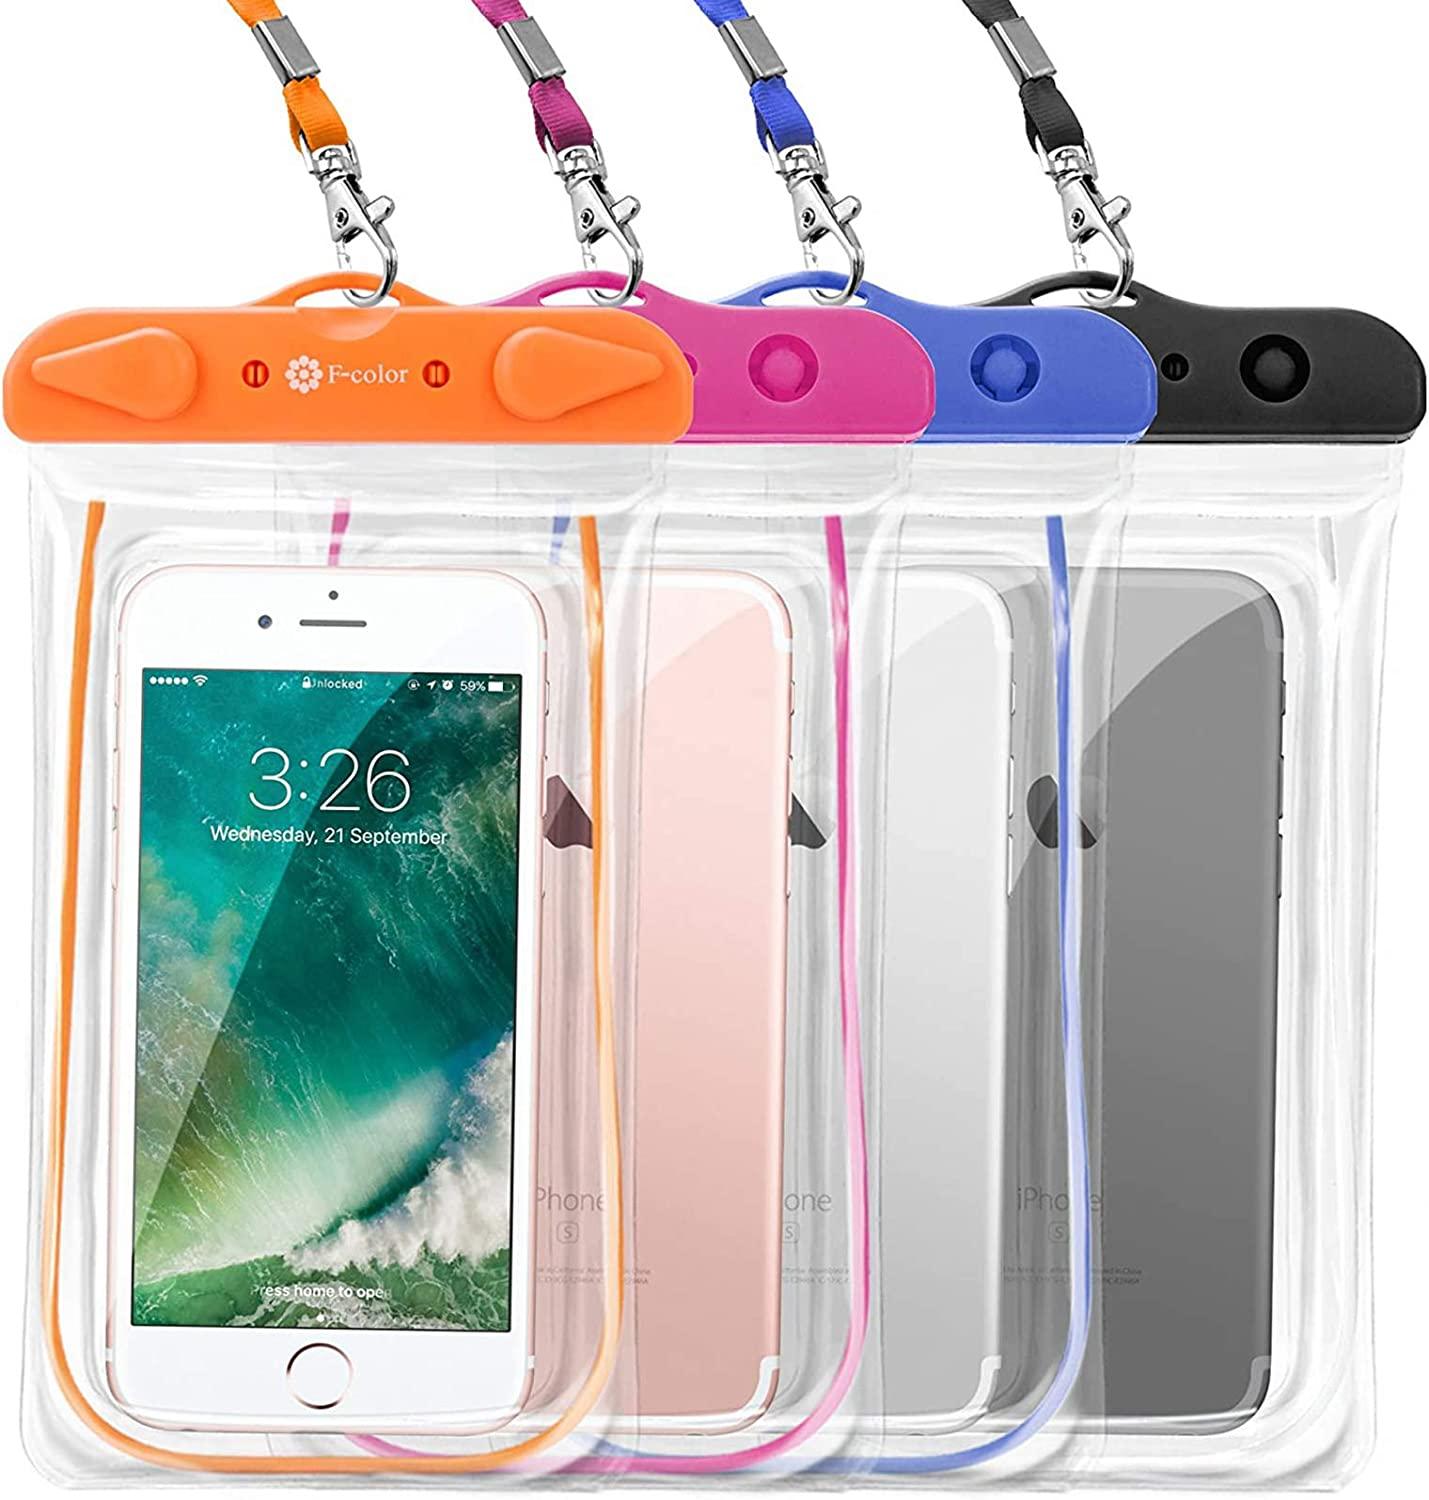 Waterproof Case, 4 Pack F-color Floating Clear Waterproof Phone Pouch TPU Dry Case Compatible for iPhone 12 Pro Max, 11, Galaxy S9+, S10, Google Pixel and More, Blue Black Orange Pink